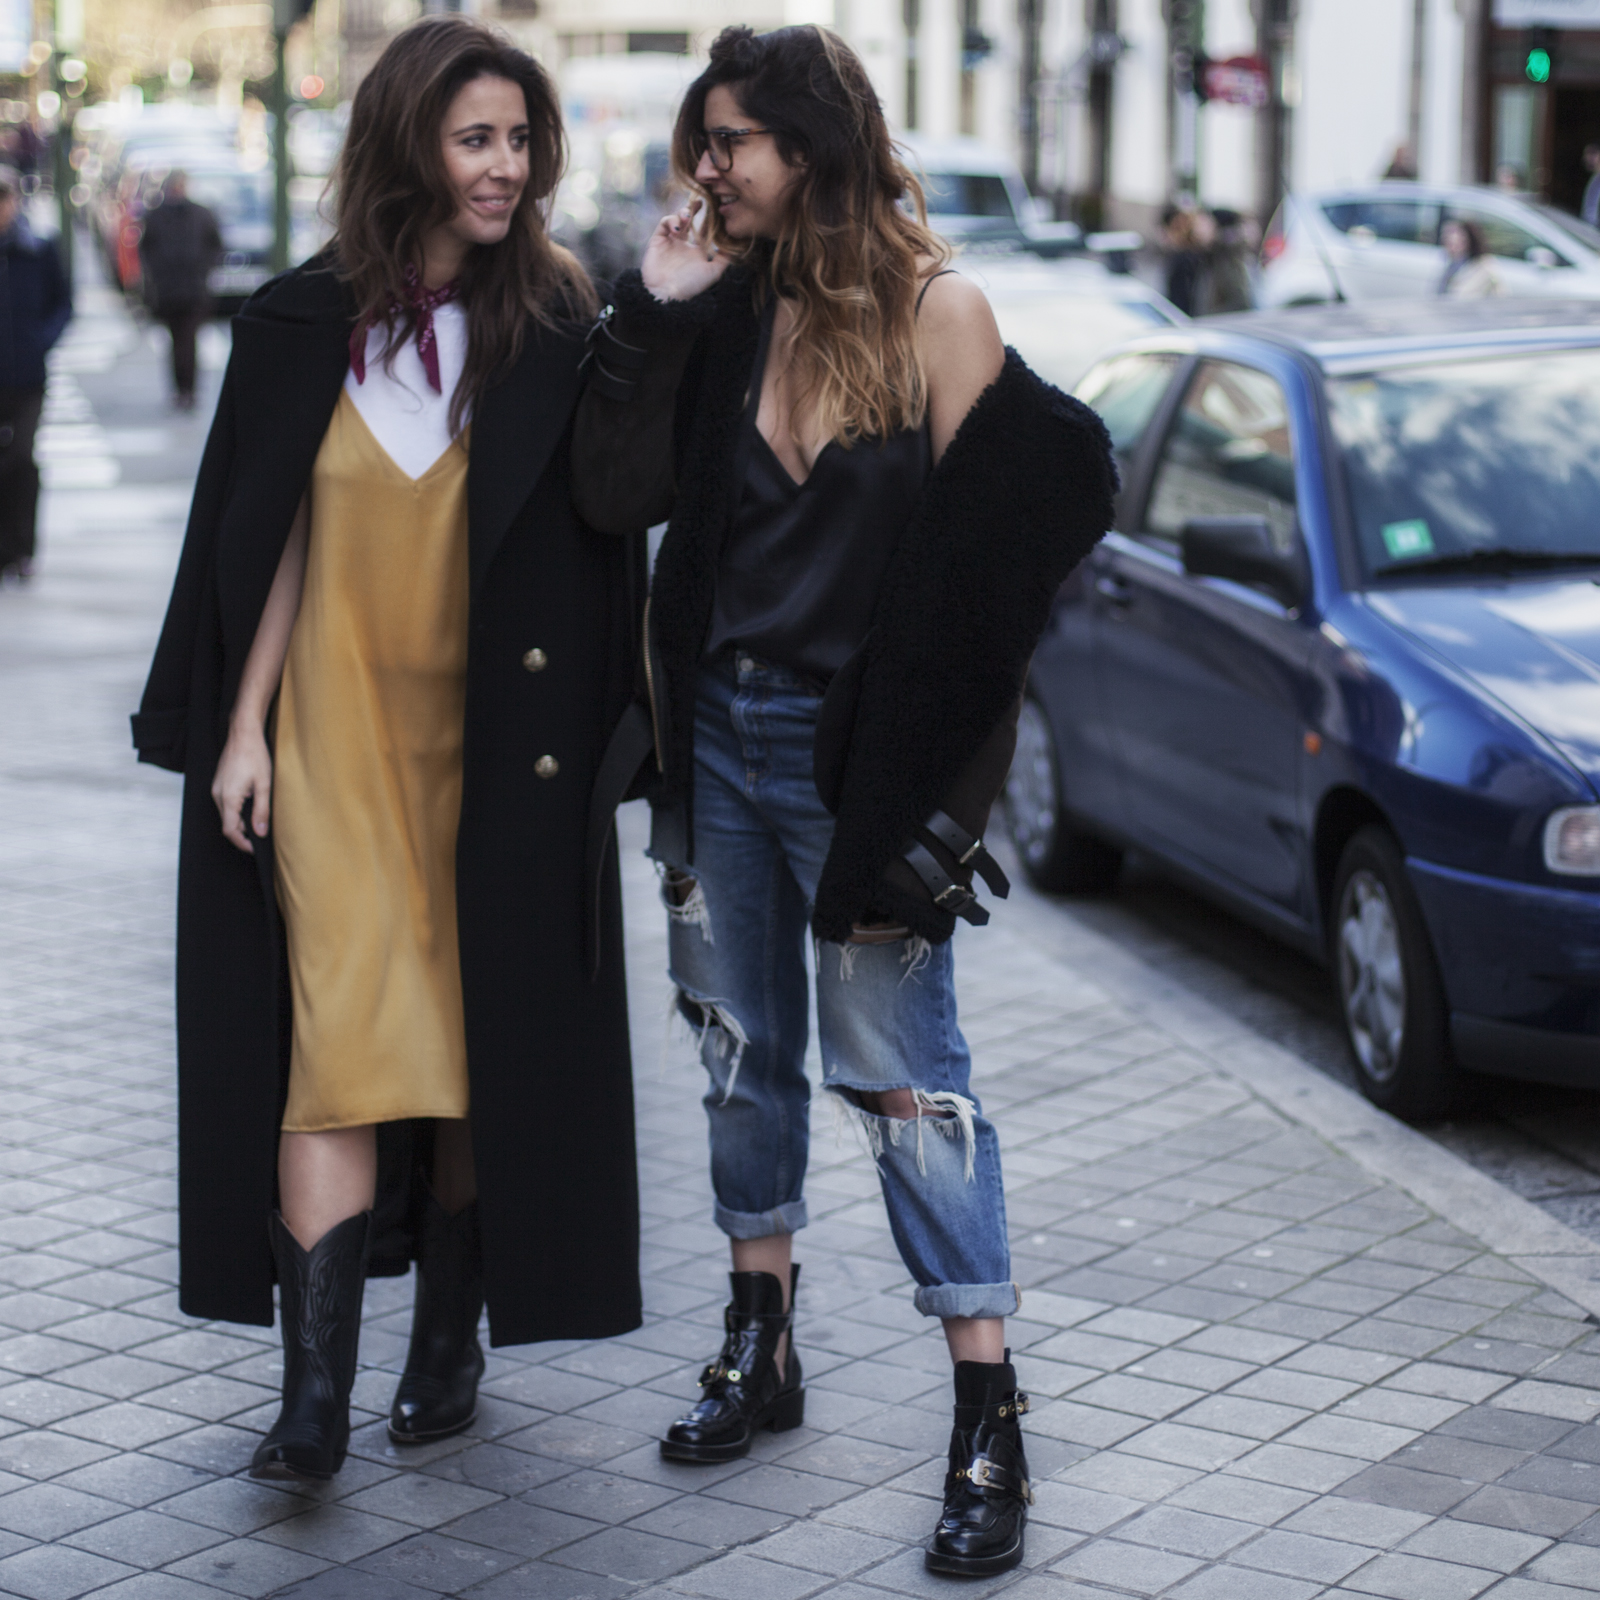 you and me-bloggers-streetstyle-fashion-street-moda en la calle-silk-dress-coruña-moda gallega-descalzaporelparque